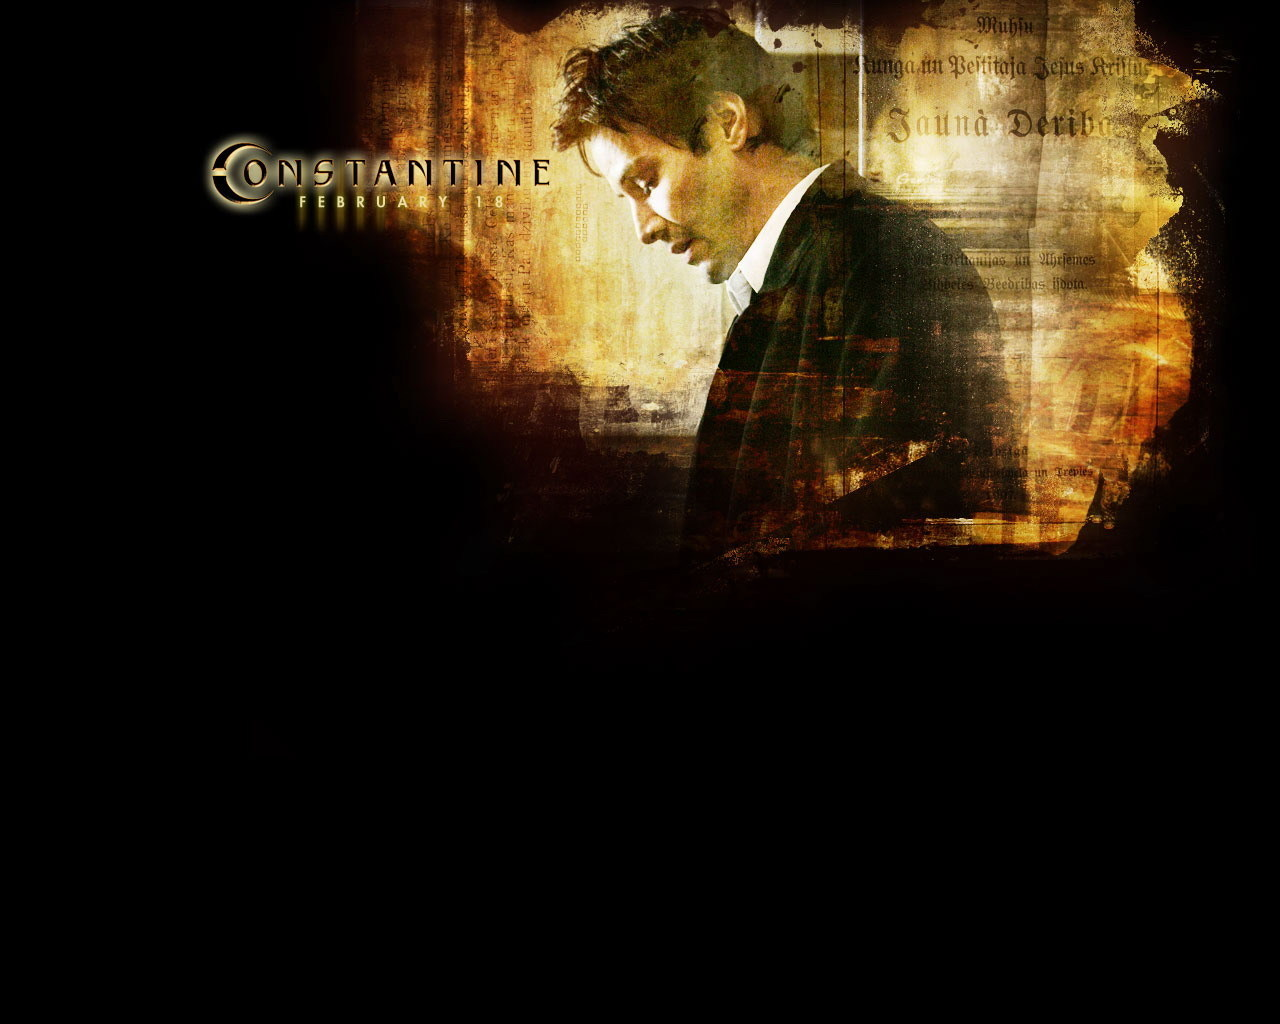 constantine images constantine hd wallpaper and background